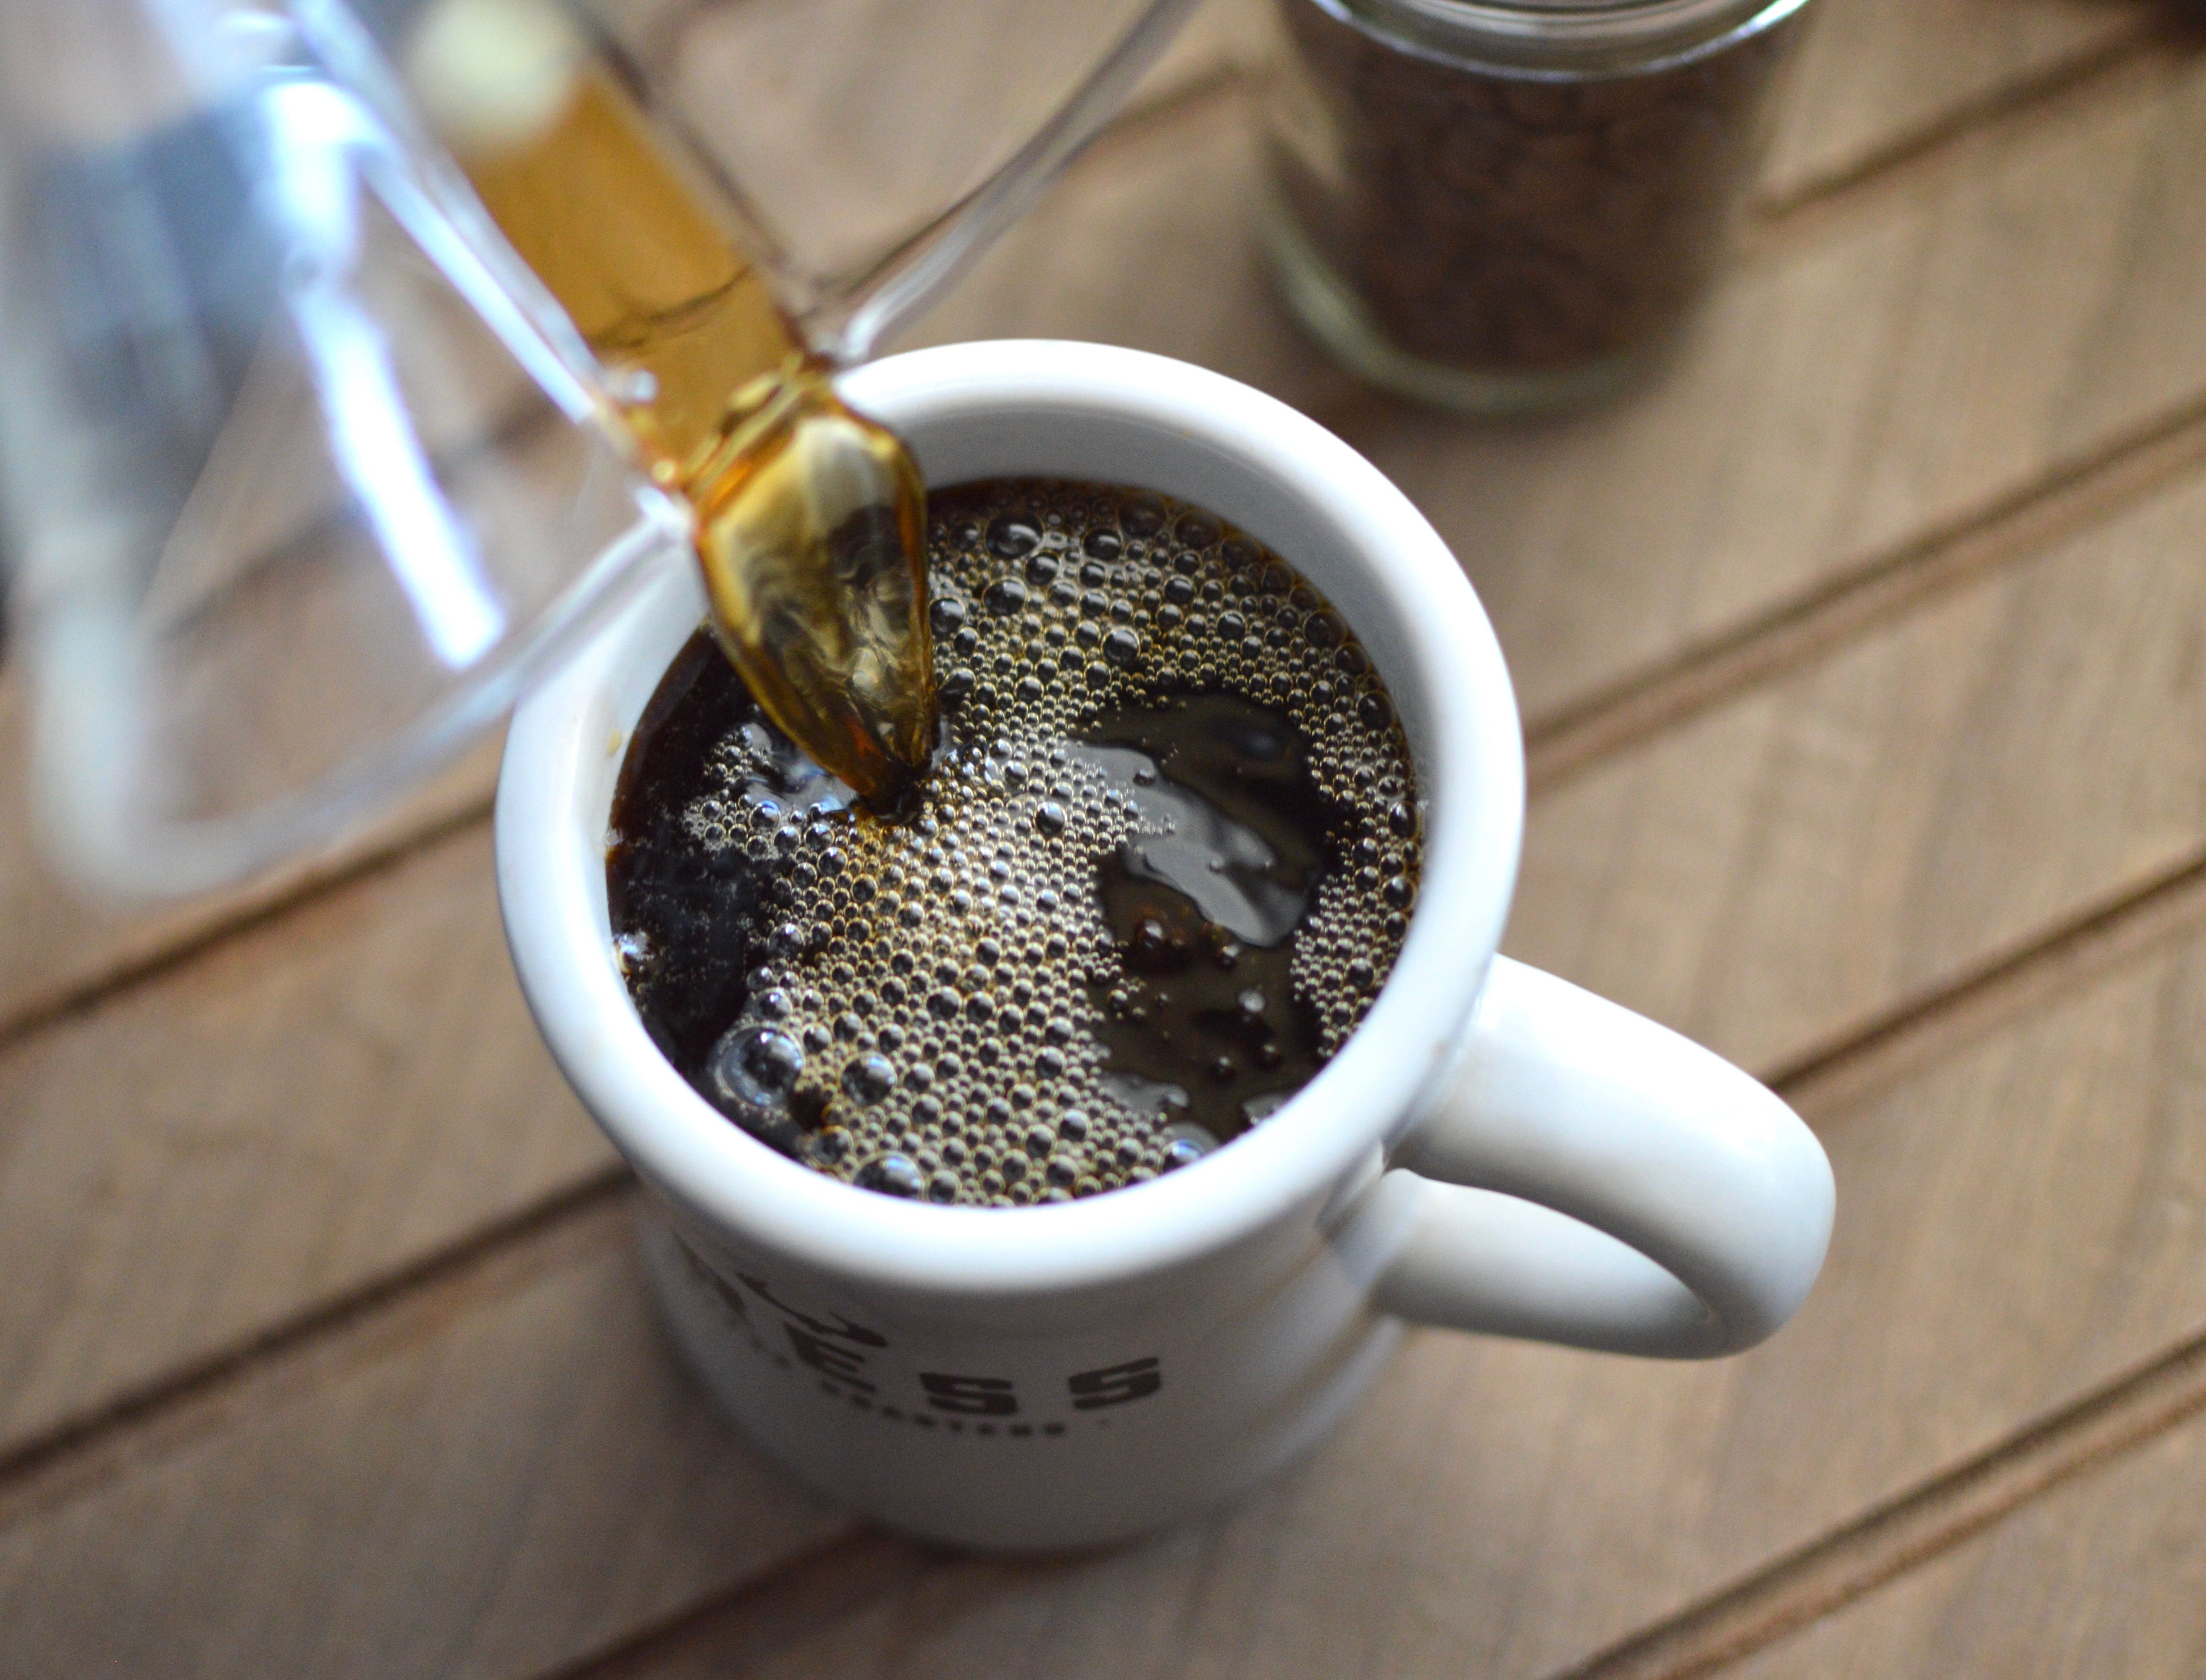 706dc593-9b84-4df1-9e90-40d975d2995b-Press_Coffee_Chemex_Cup National Coffee Day: Where to score a free cup of joe — in person and online